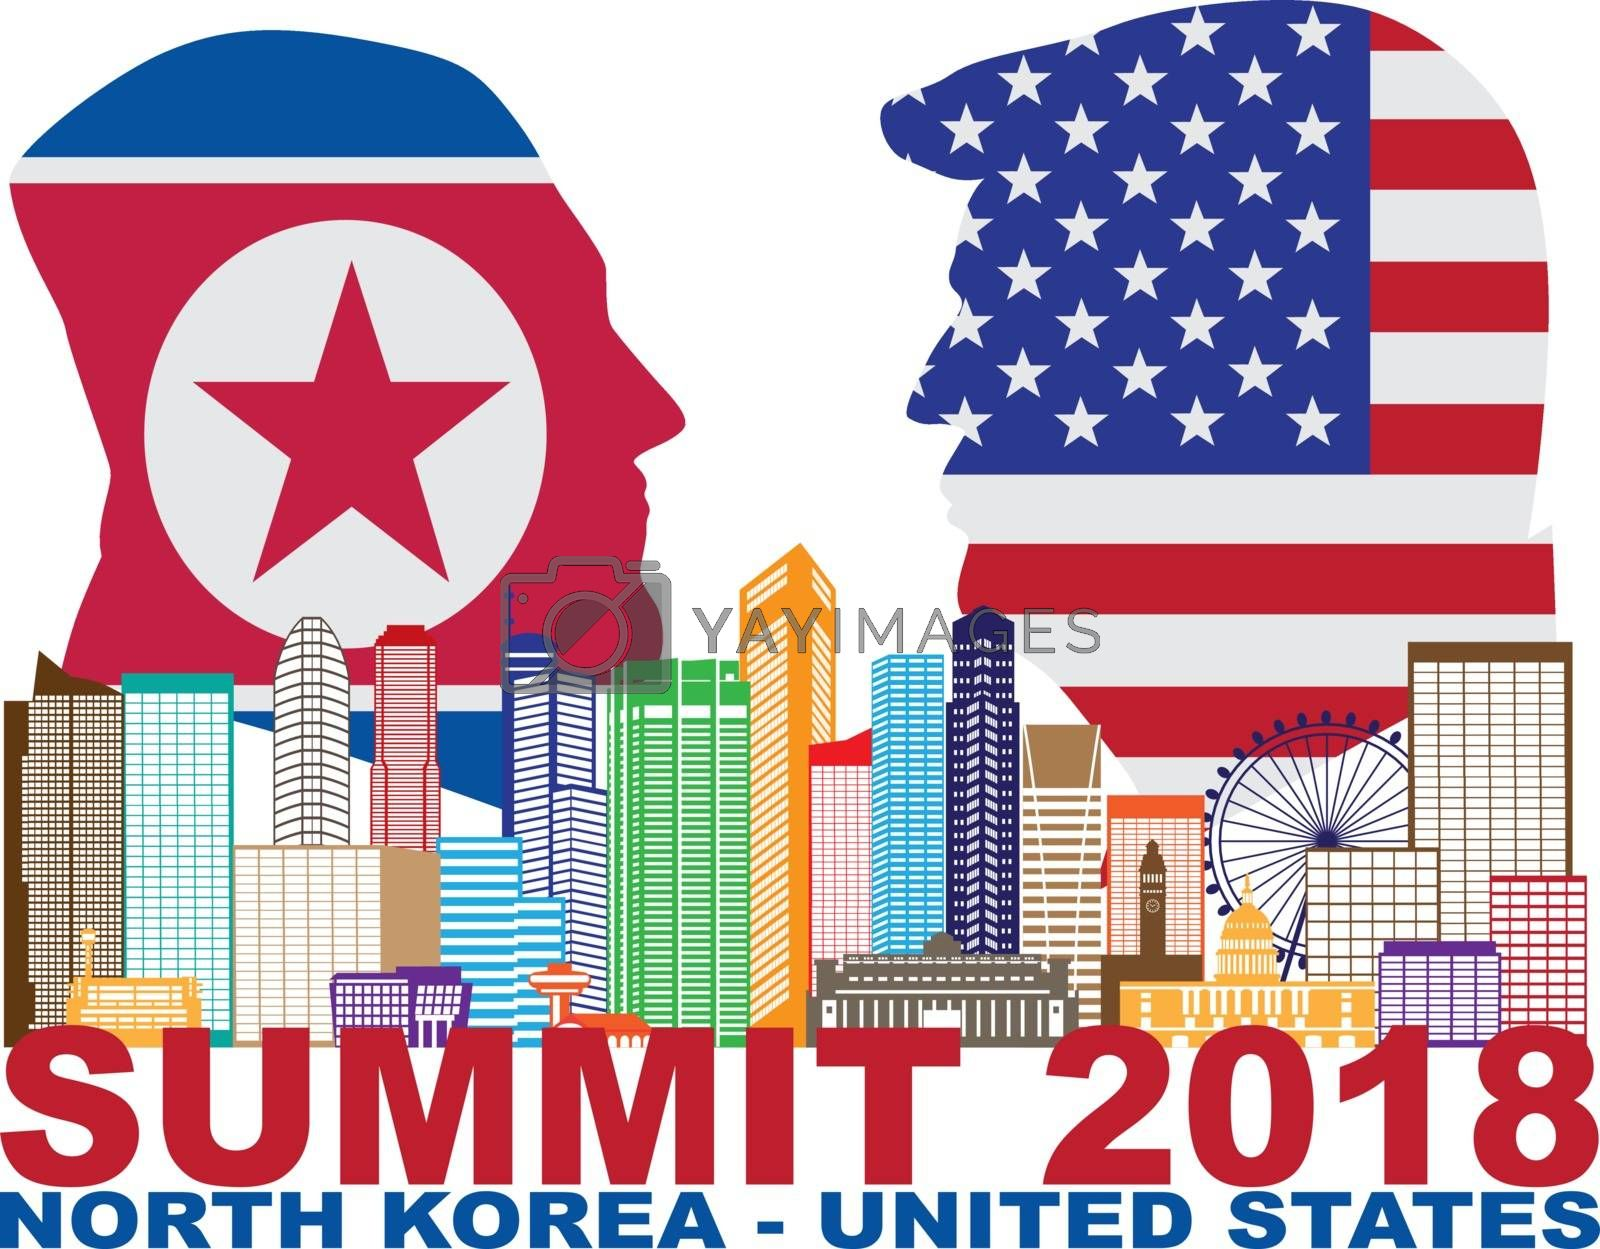 President Donald Trump and Kim Jong Un silhouettes with USA and North Korea Flags Summit 2018 Singapore city skyline Illustration